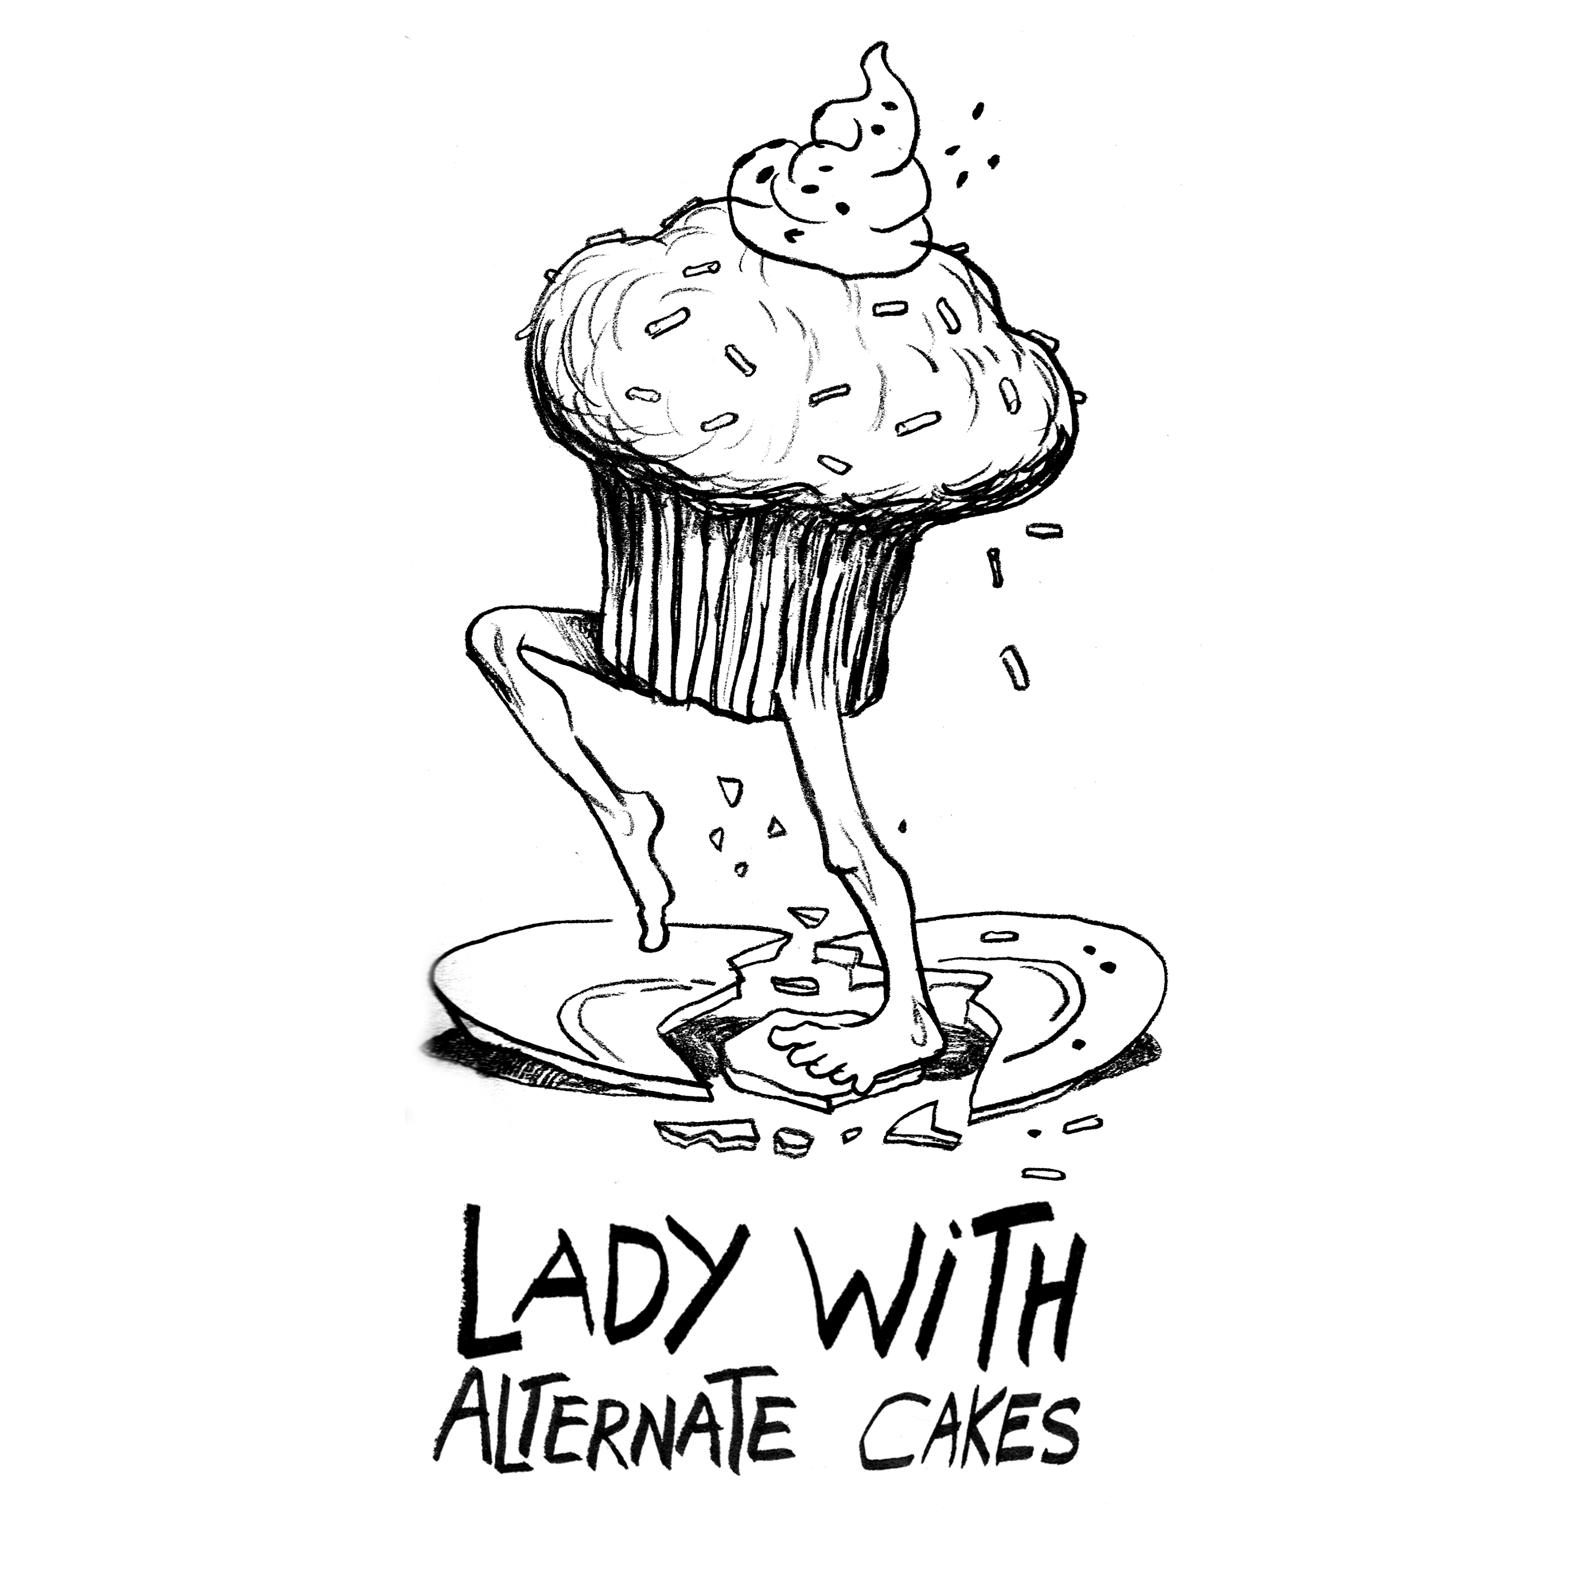 LADY WITH - Alternate Cakes cover